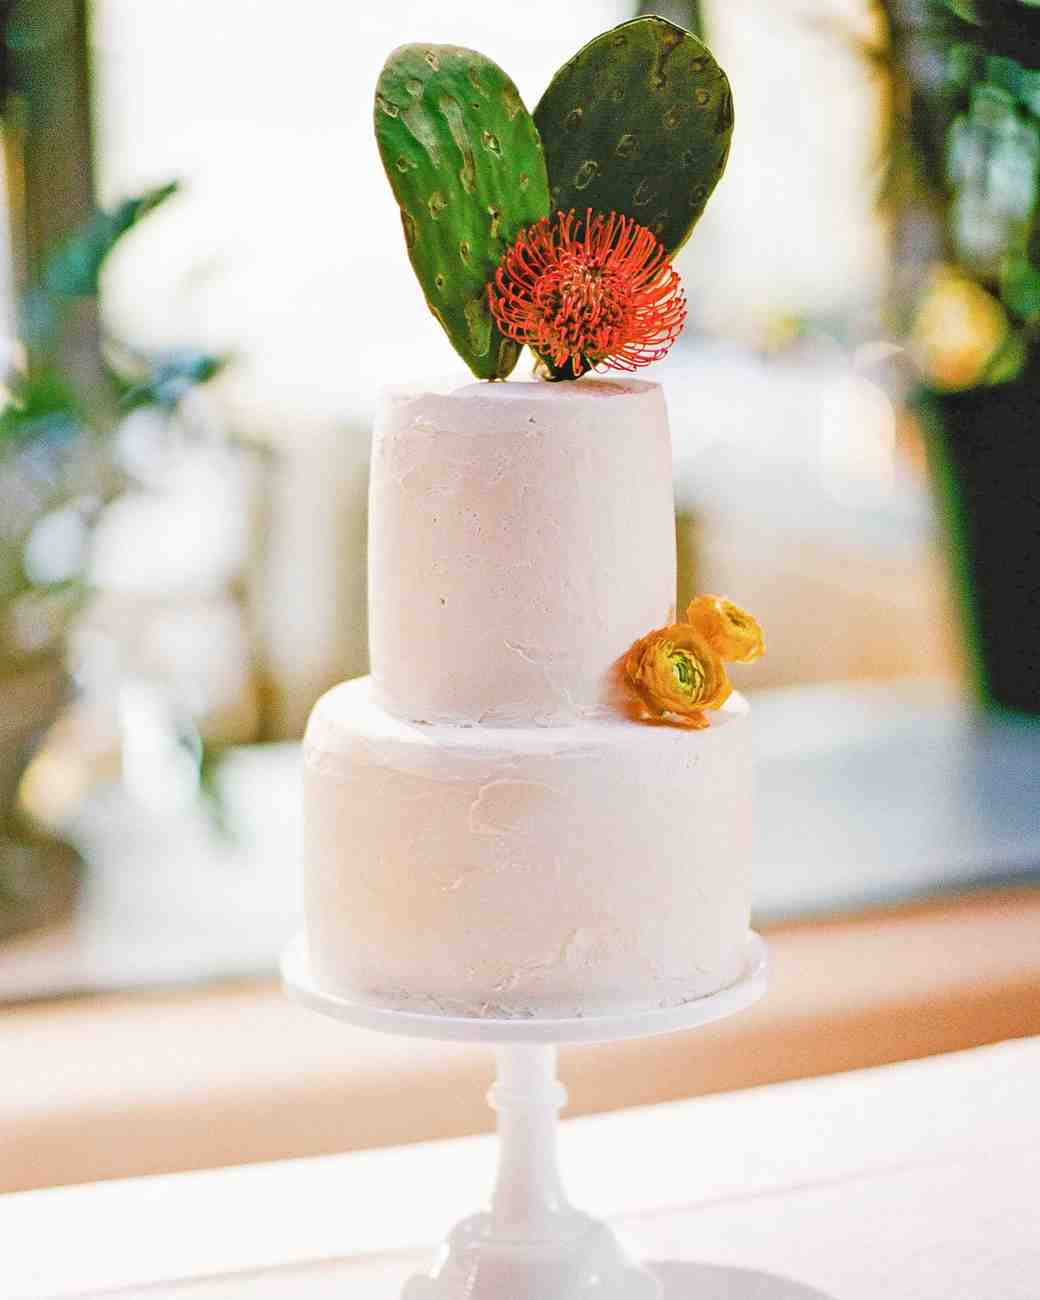 addie alex wedding cake cacti